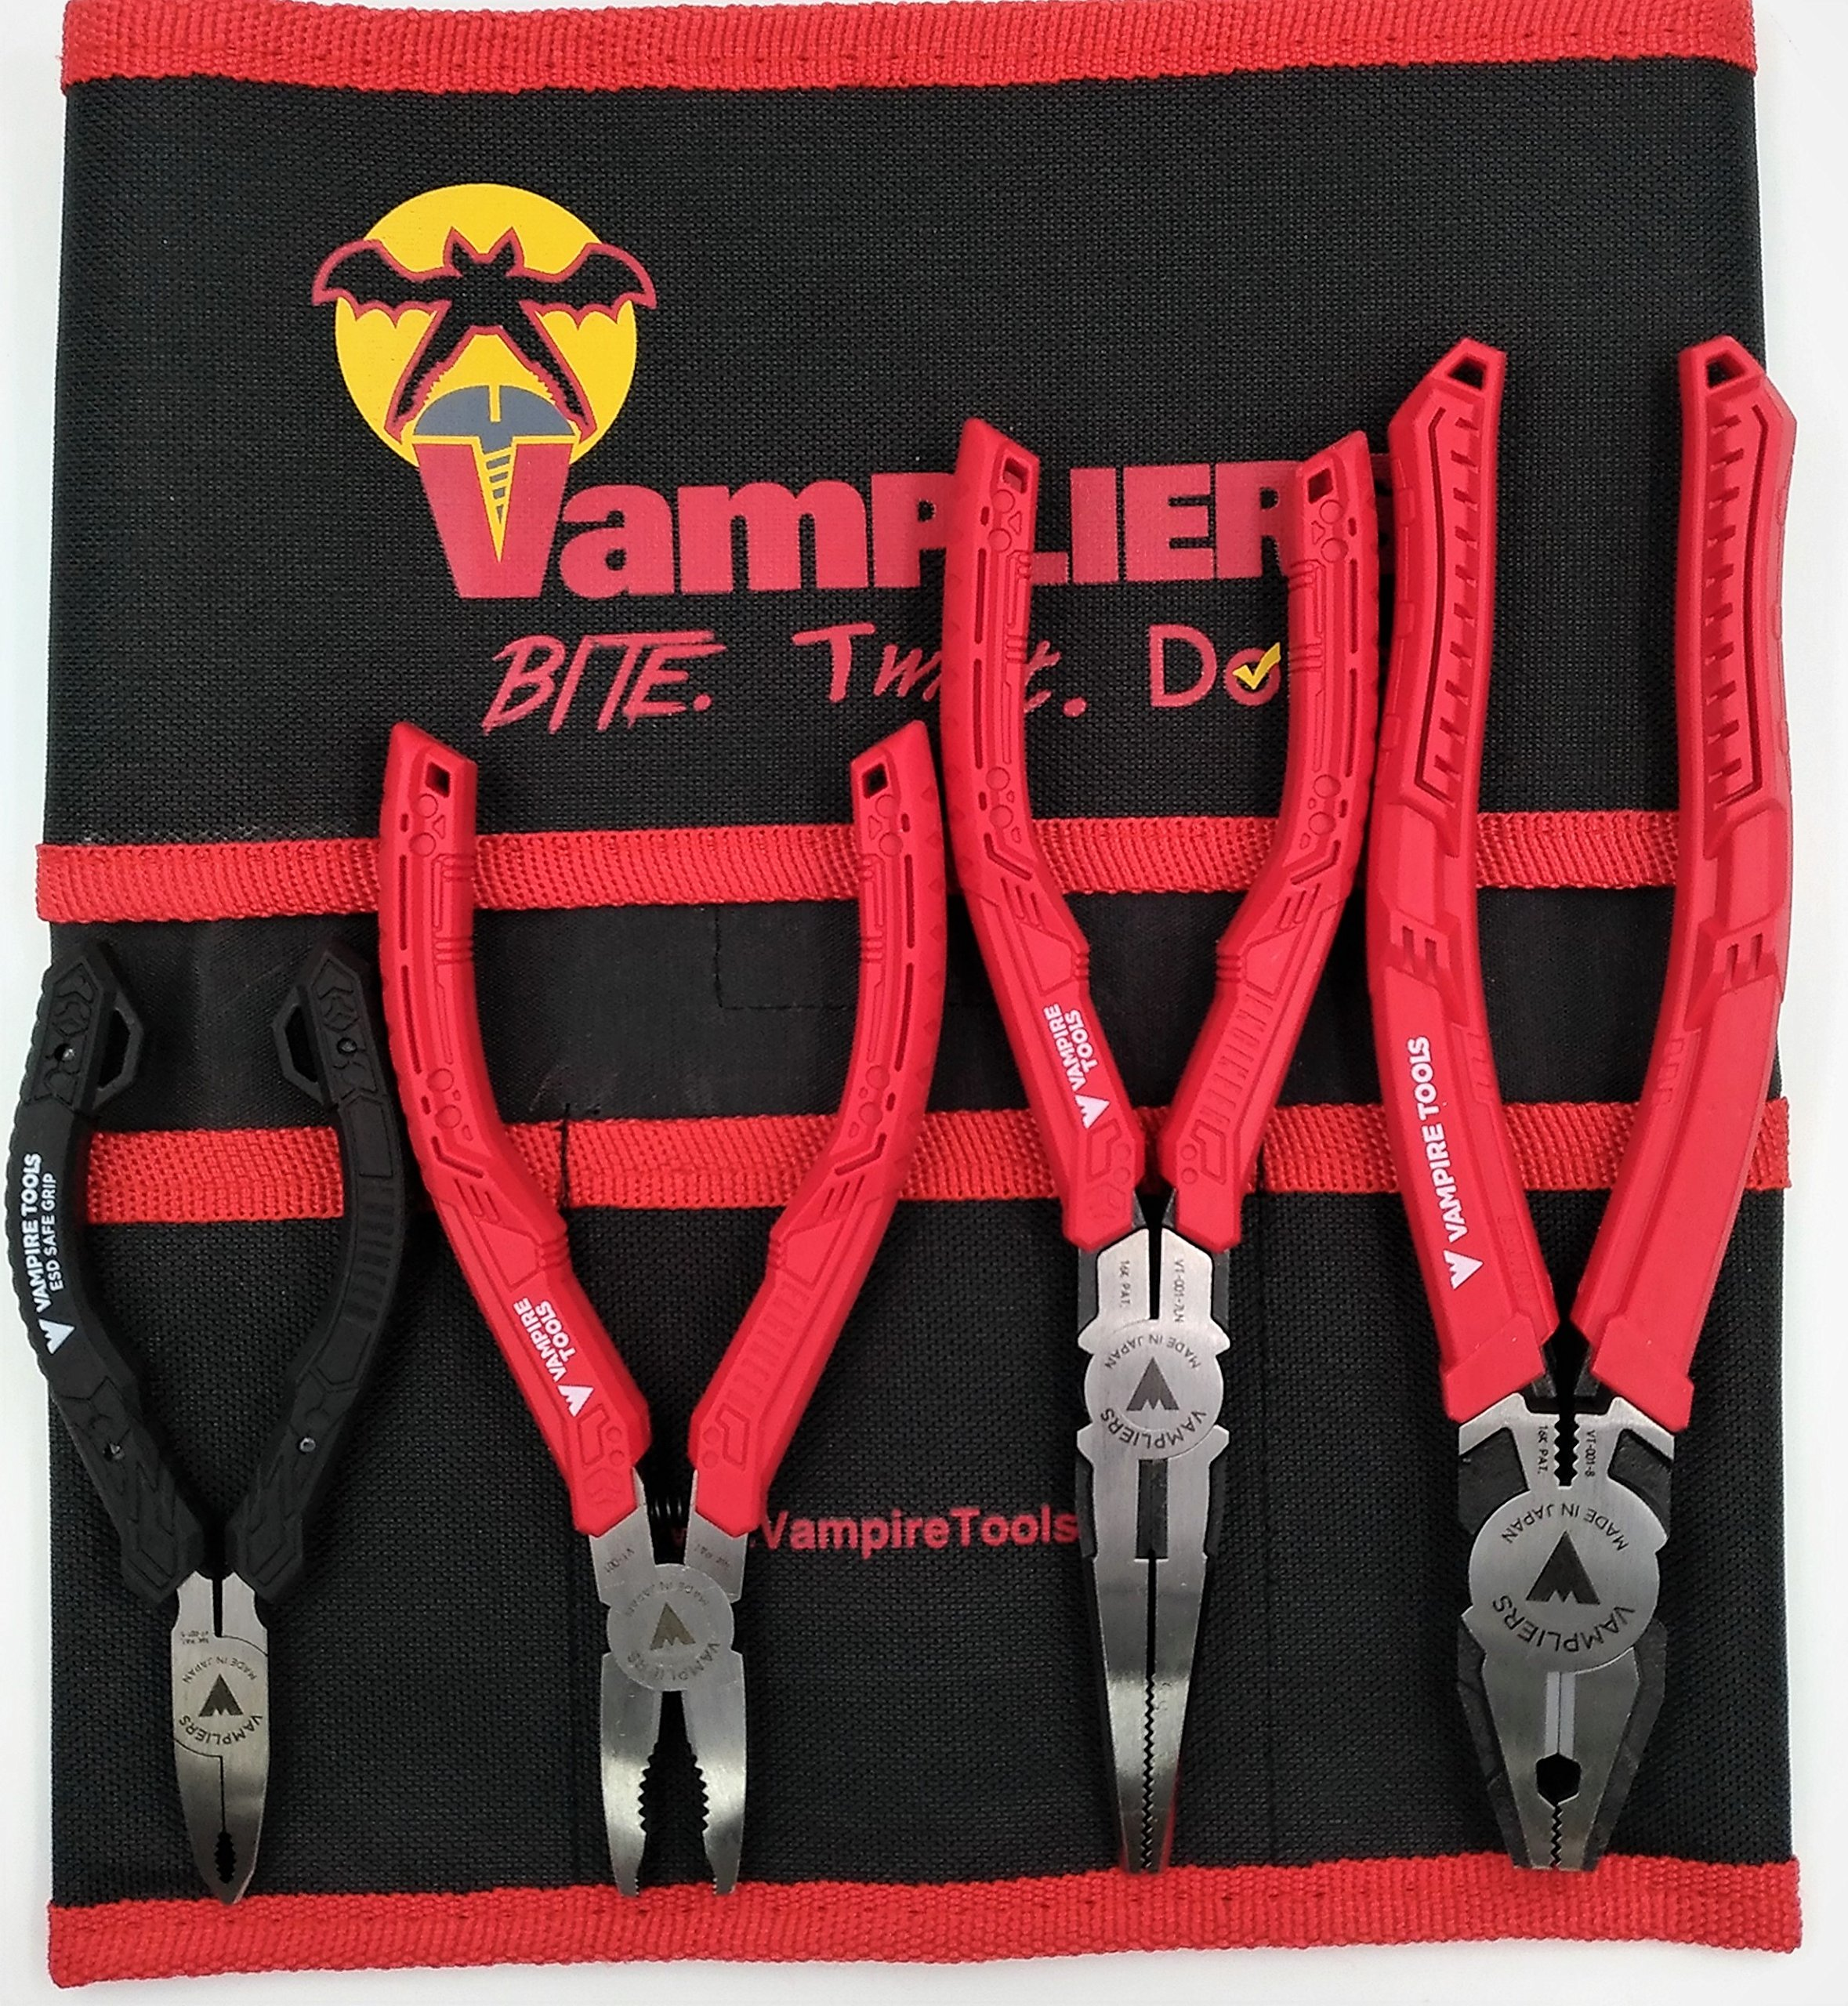 VamPLIERS 4-PC Set S4BP Specialty Screw Extraction Pliers. Extract Stripped Stuck Security, Corroded, or Rusted Screws + Tool Pouch